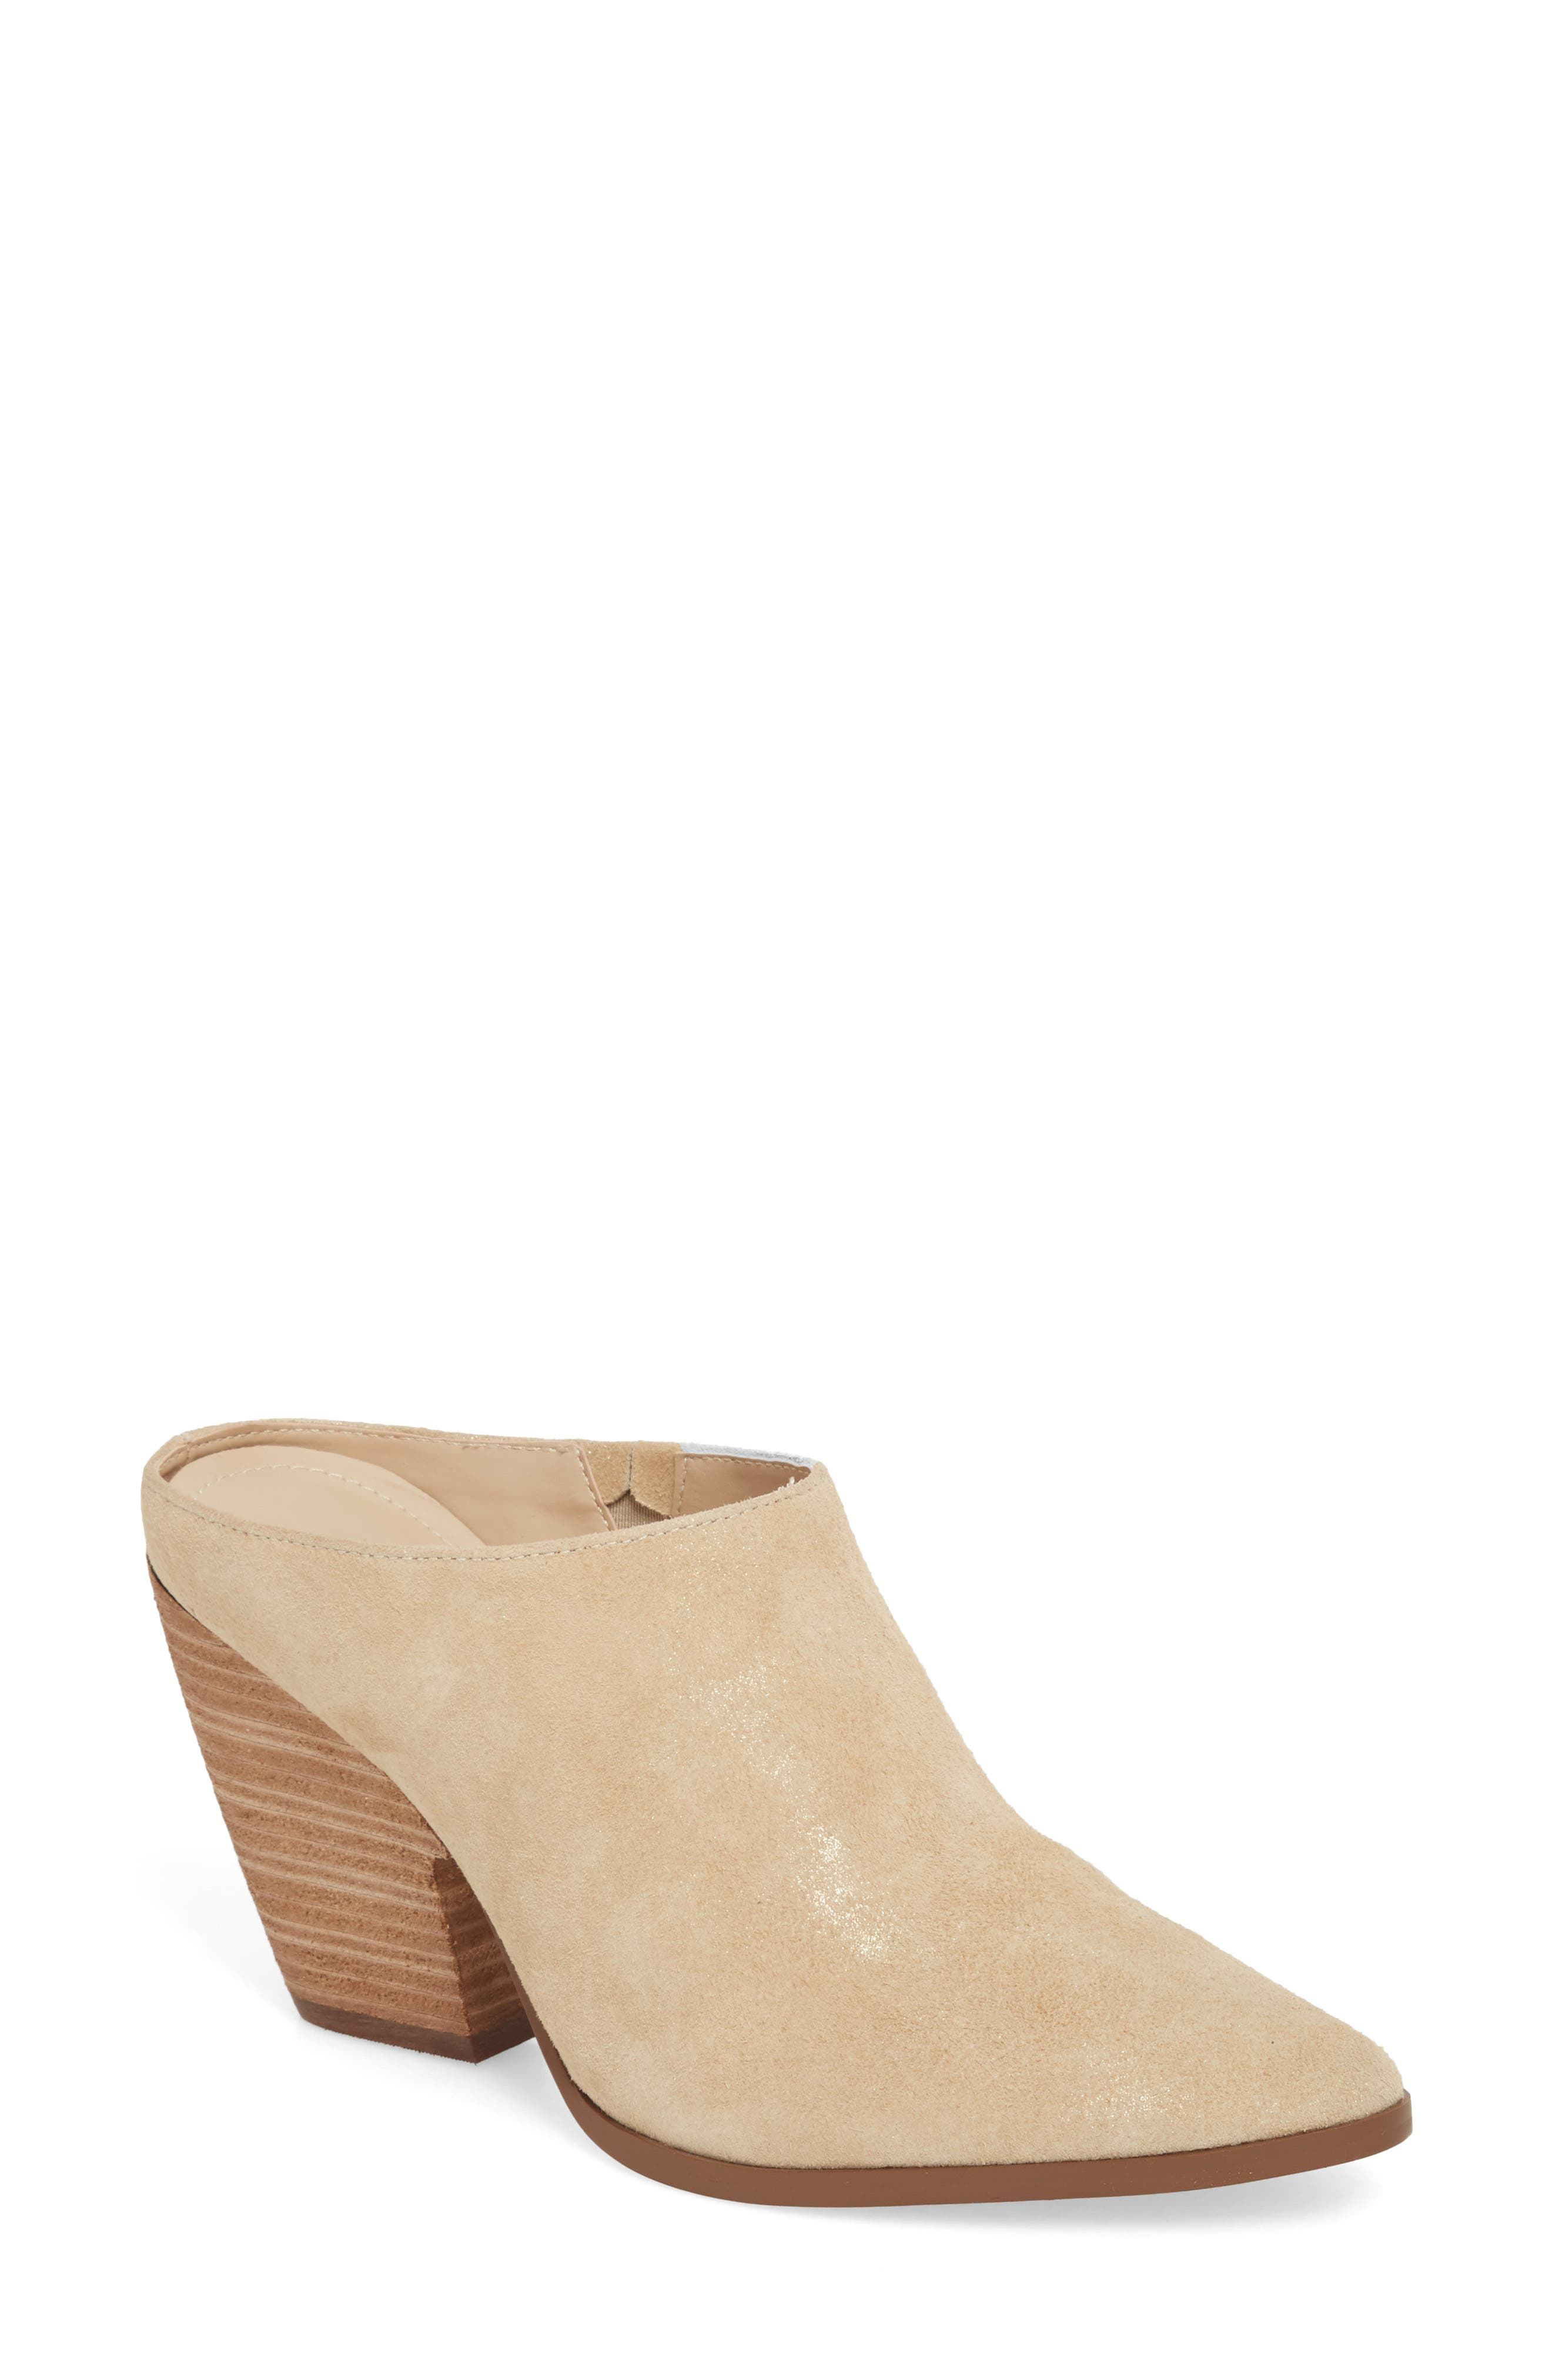 CHARLES BY CHARLES DAVID, Nico Mule, Main thumbnail 1, color, NUDE LIGHT GOLD SUEDE